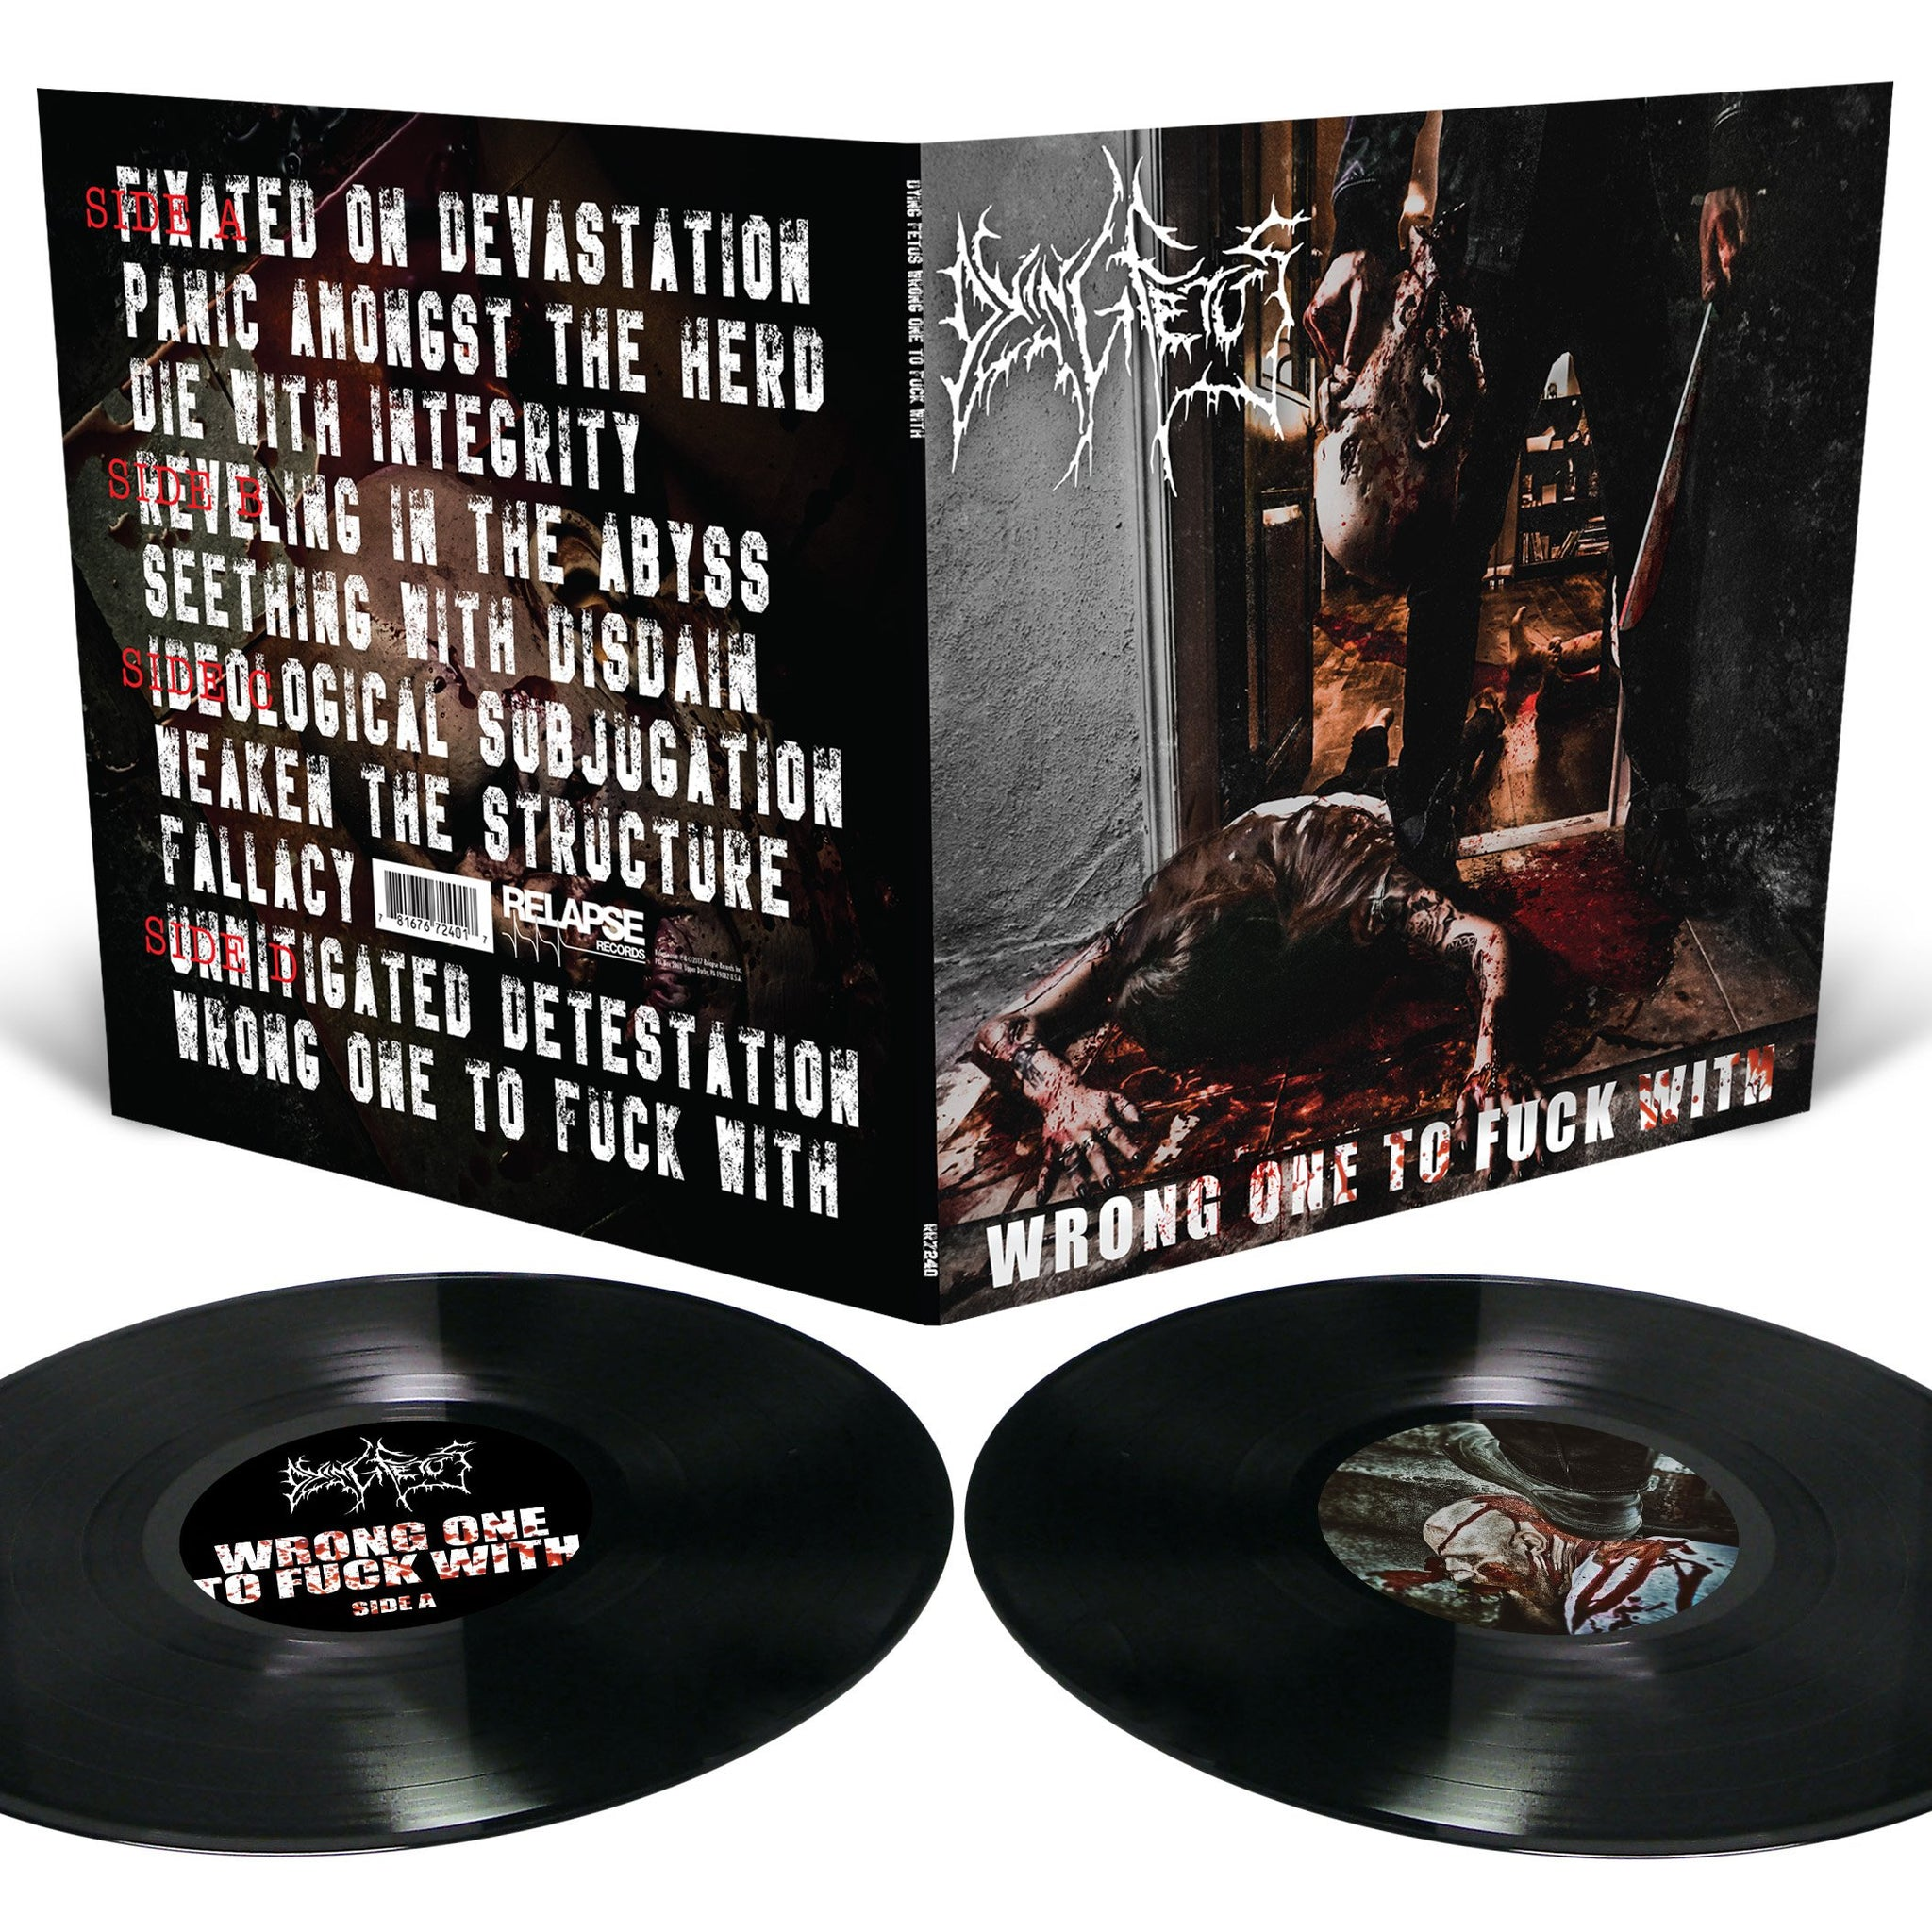 DYING FETUS - Wrong One to Fuck With 2LP